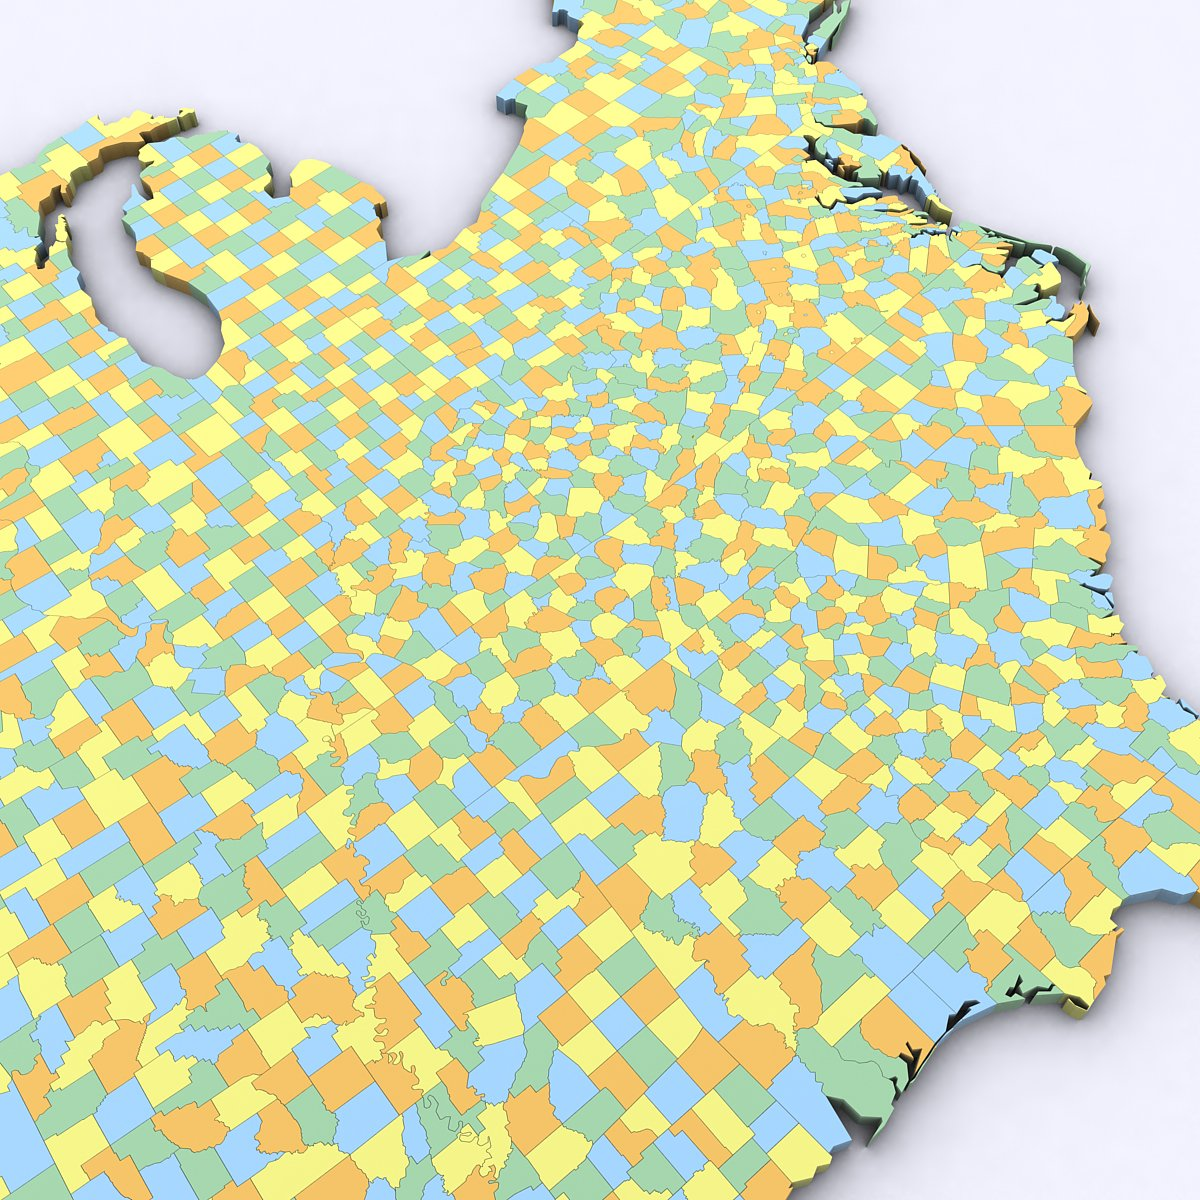 US Political Map With Counties D Model In Environment DExport - Map of us political counties